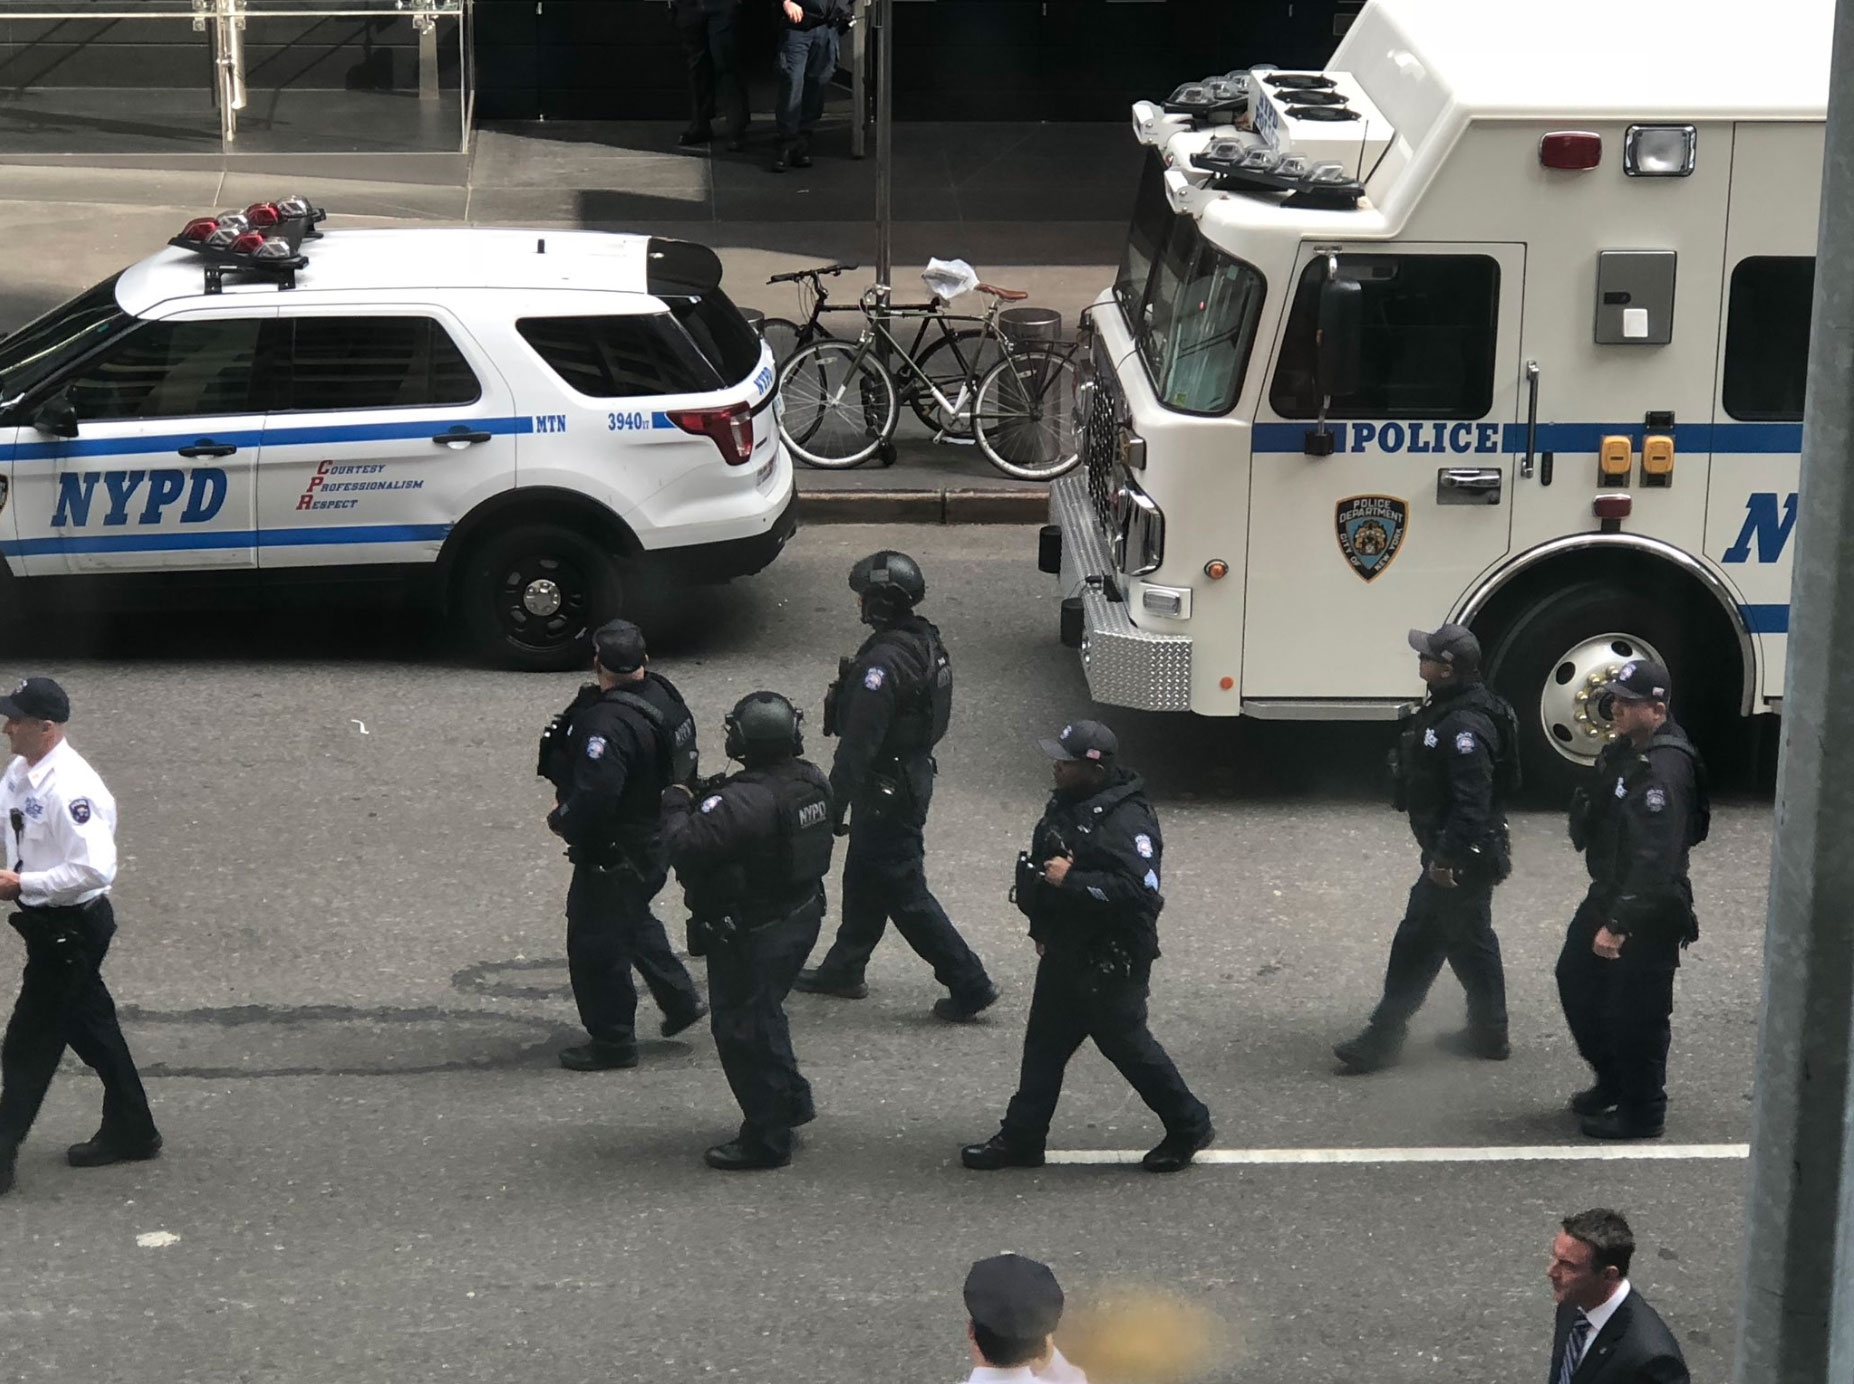 "<div class=""meta image-caption""><div class=""origin-logo origin-image none""><span>none</span></div><span class=""caption-text"">Authorities are shown on the scene near the Time Warner Center, where the CNN offices are located in New York. (Mark Wilson/Twitter)</span></div>"